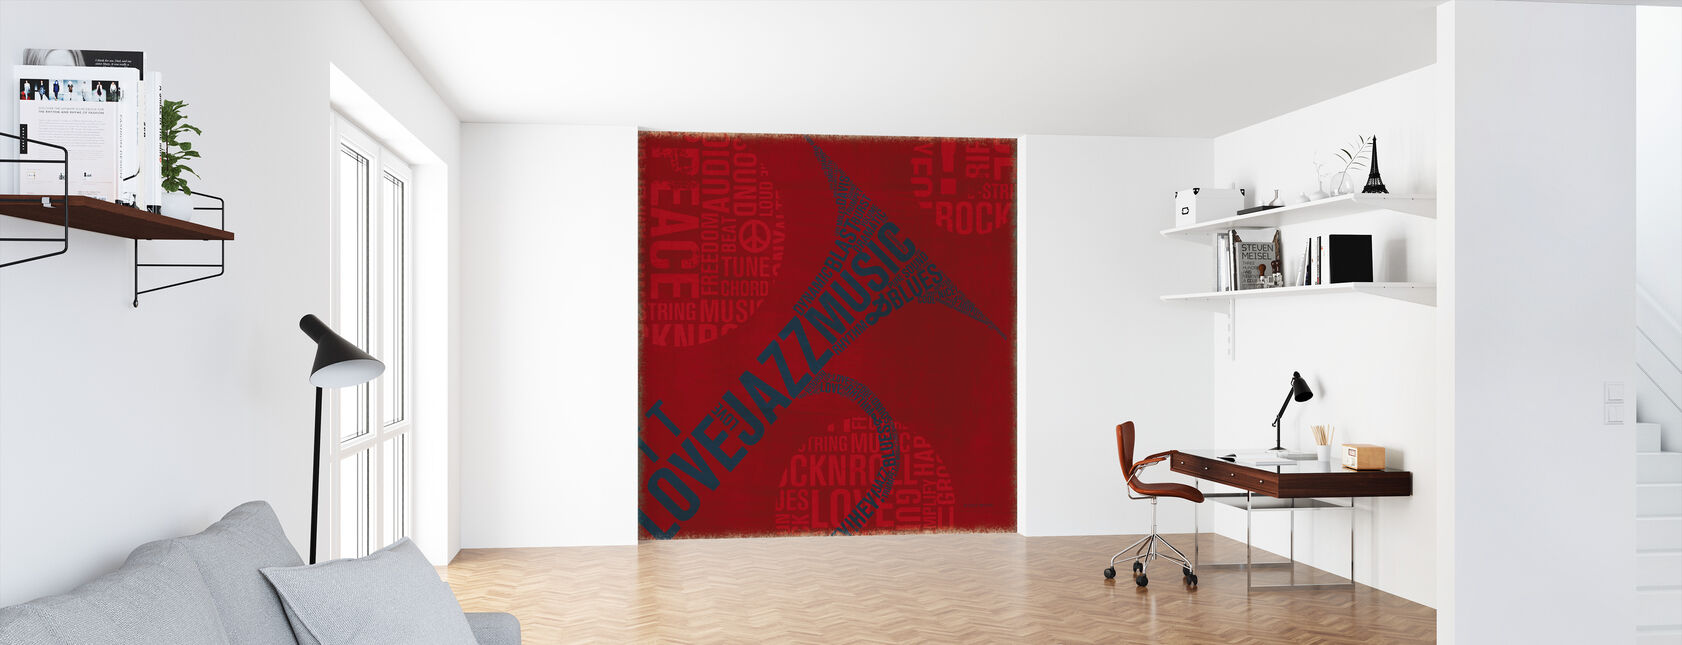 Type Trumpet Square - Wallpaper - Office